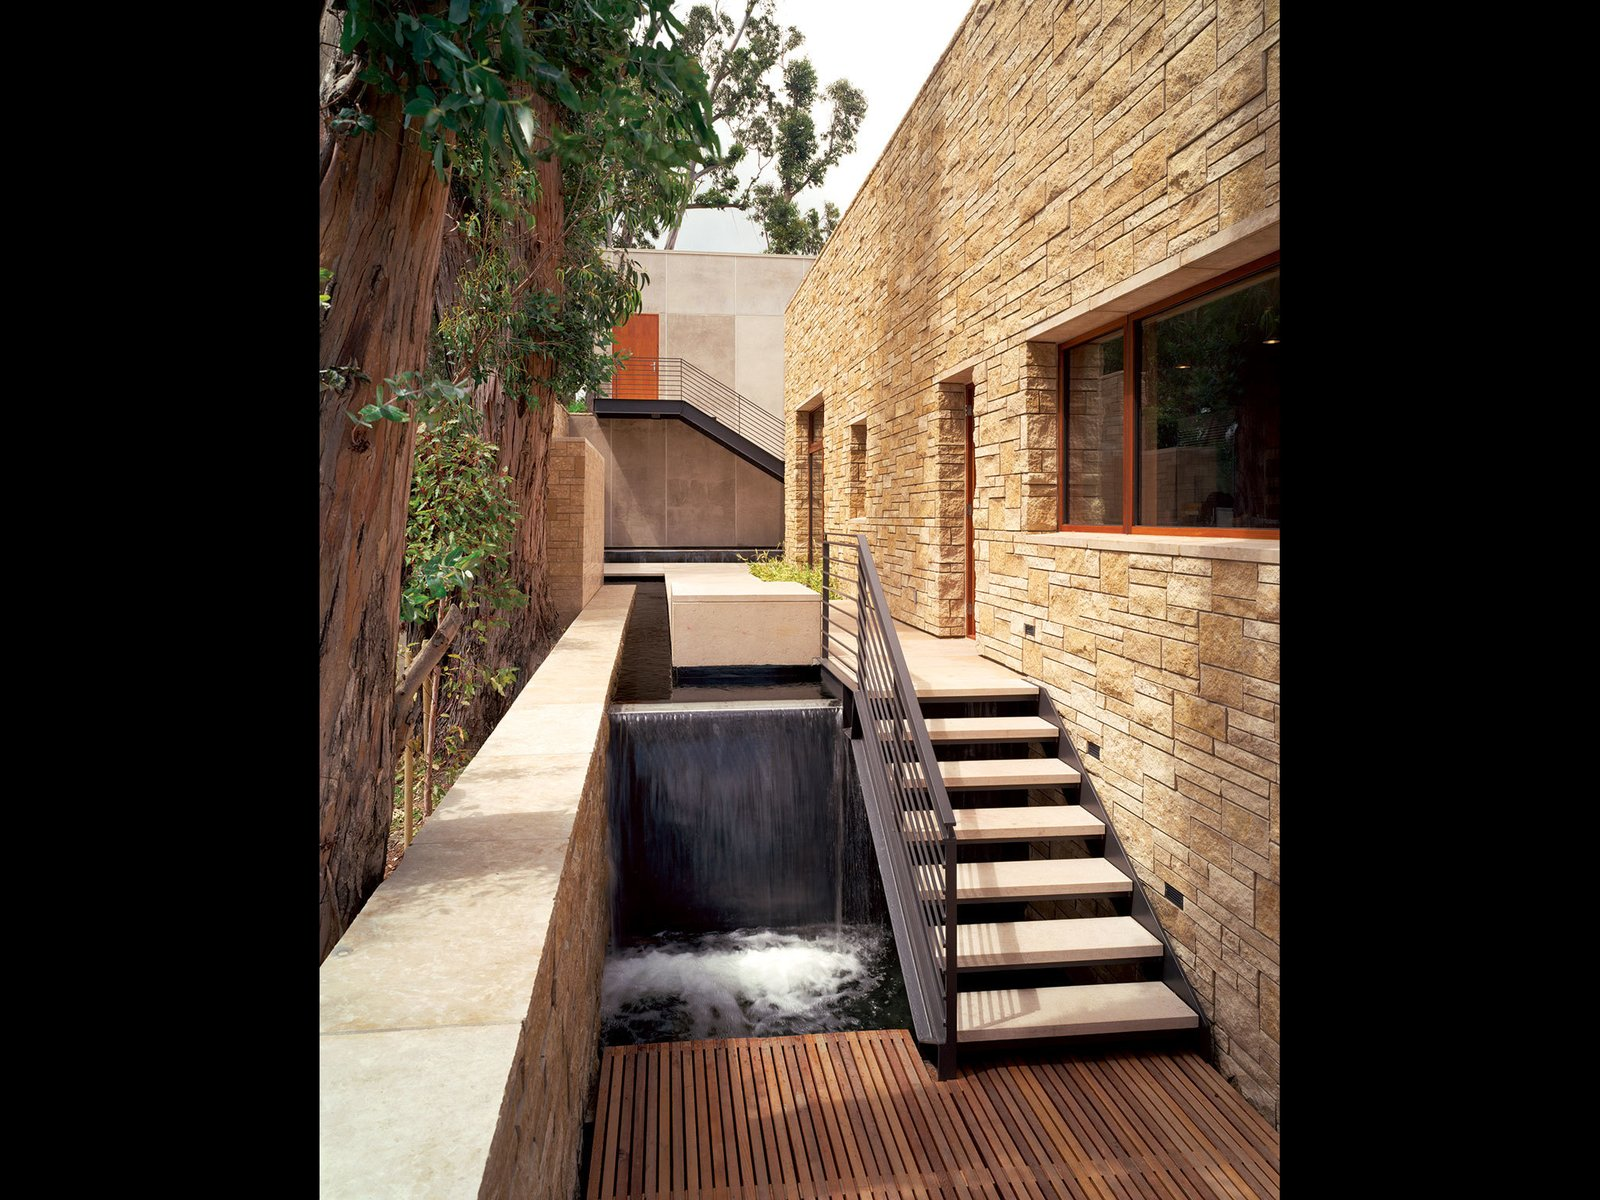 Outdoor, Side Yard, and Small Pools, Tubs, Shower Edgewood House Mill Valley, CA  Best Photos from Edgewood House